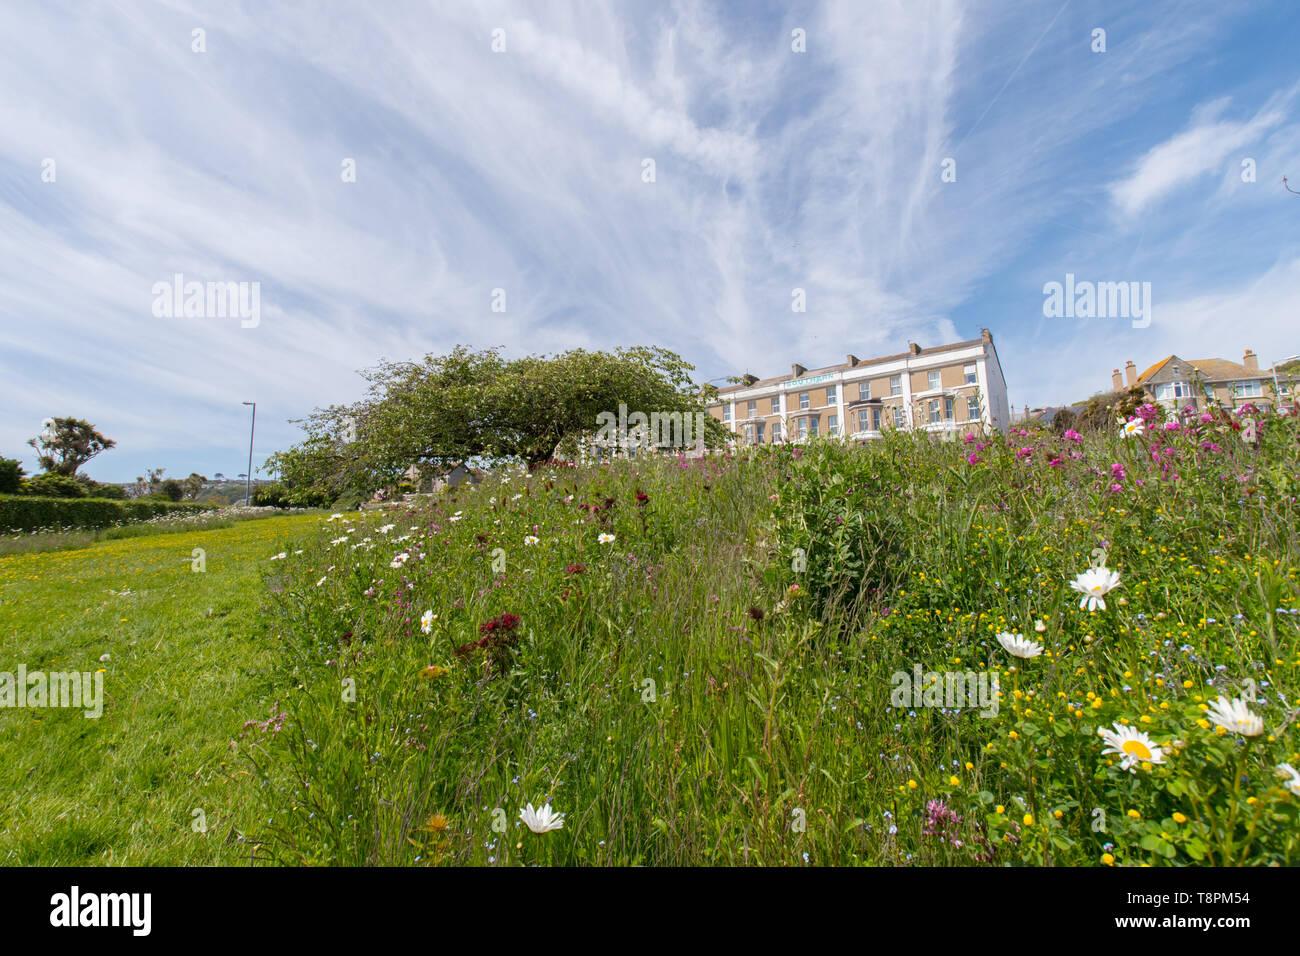 Wherrytown, Cornwall, UK. 14th May 2019. UK Weather. Wild flowers were in bloom in the May sunshine near Newlyn. The green space is one that has benefited from EU part funding in Cornwall Councils 'Green Infrastructure for Growth' initiative. Credit Simon Maycock / Alamy Live News. - Stock Image